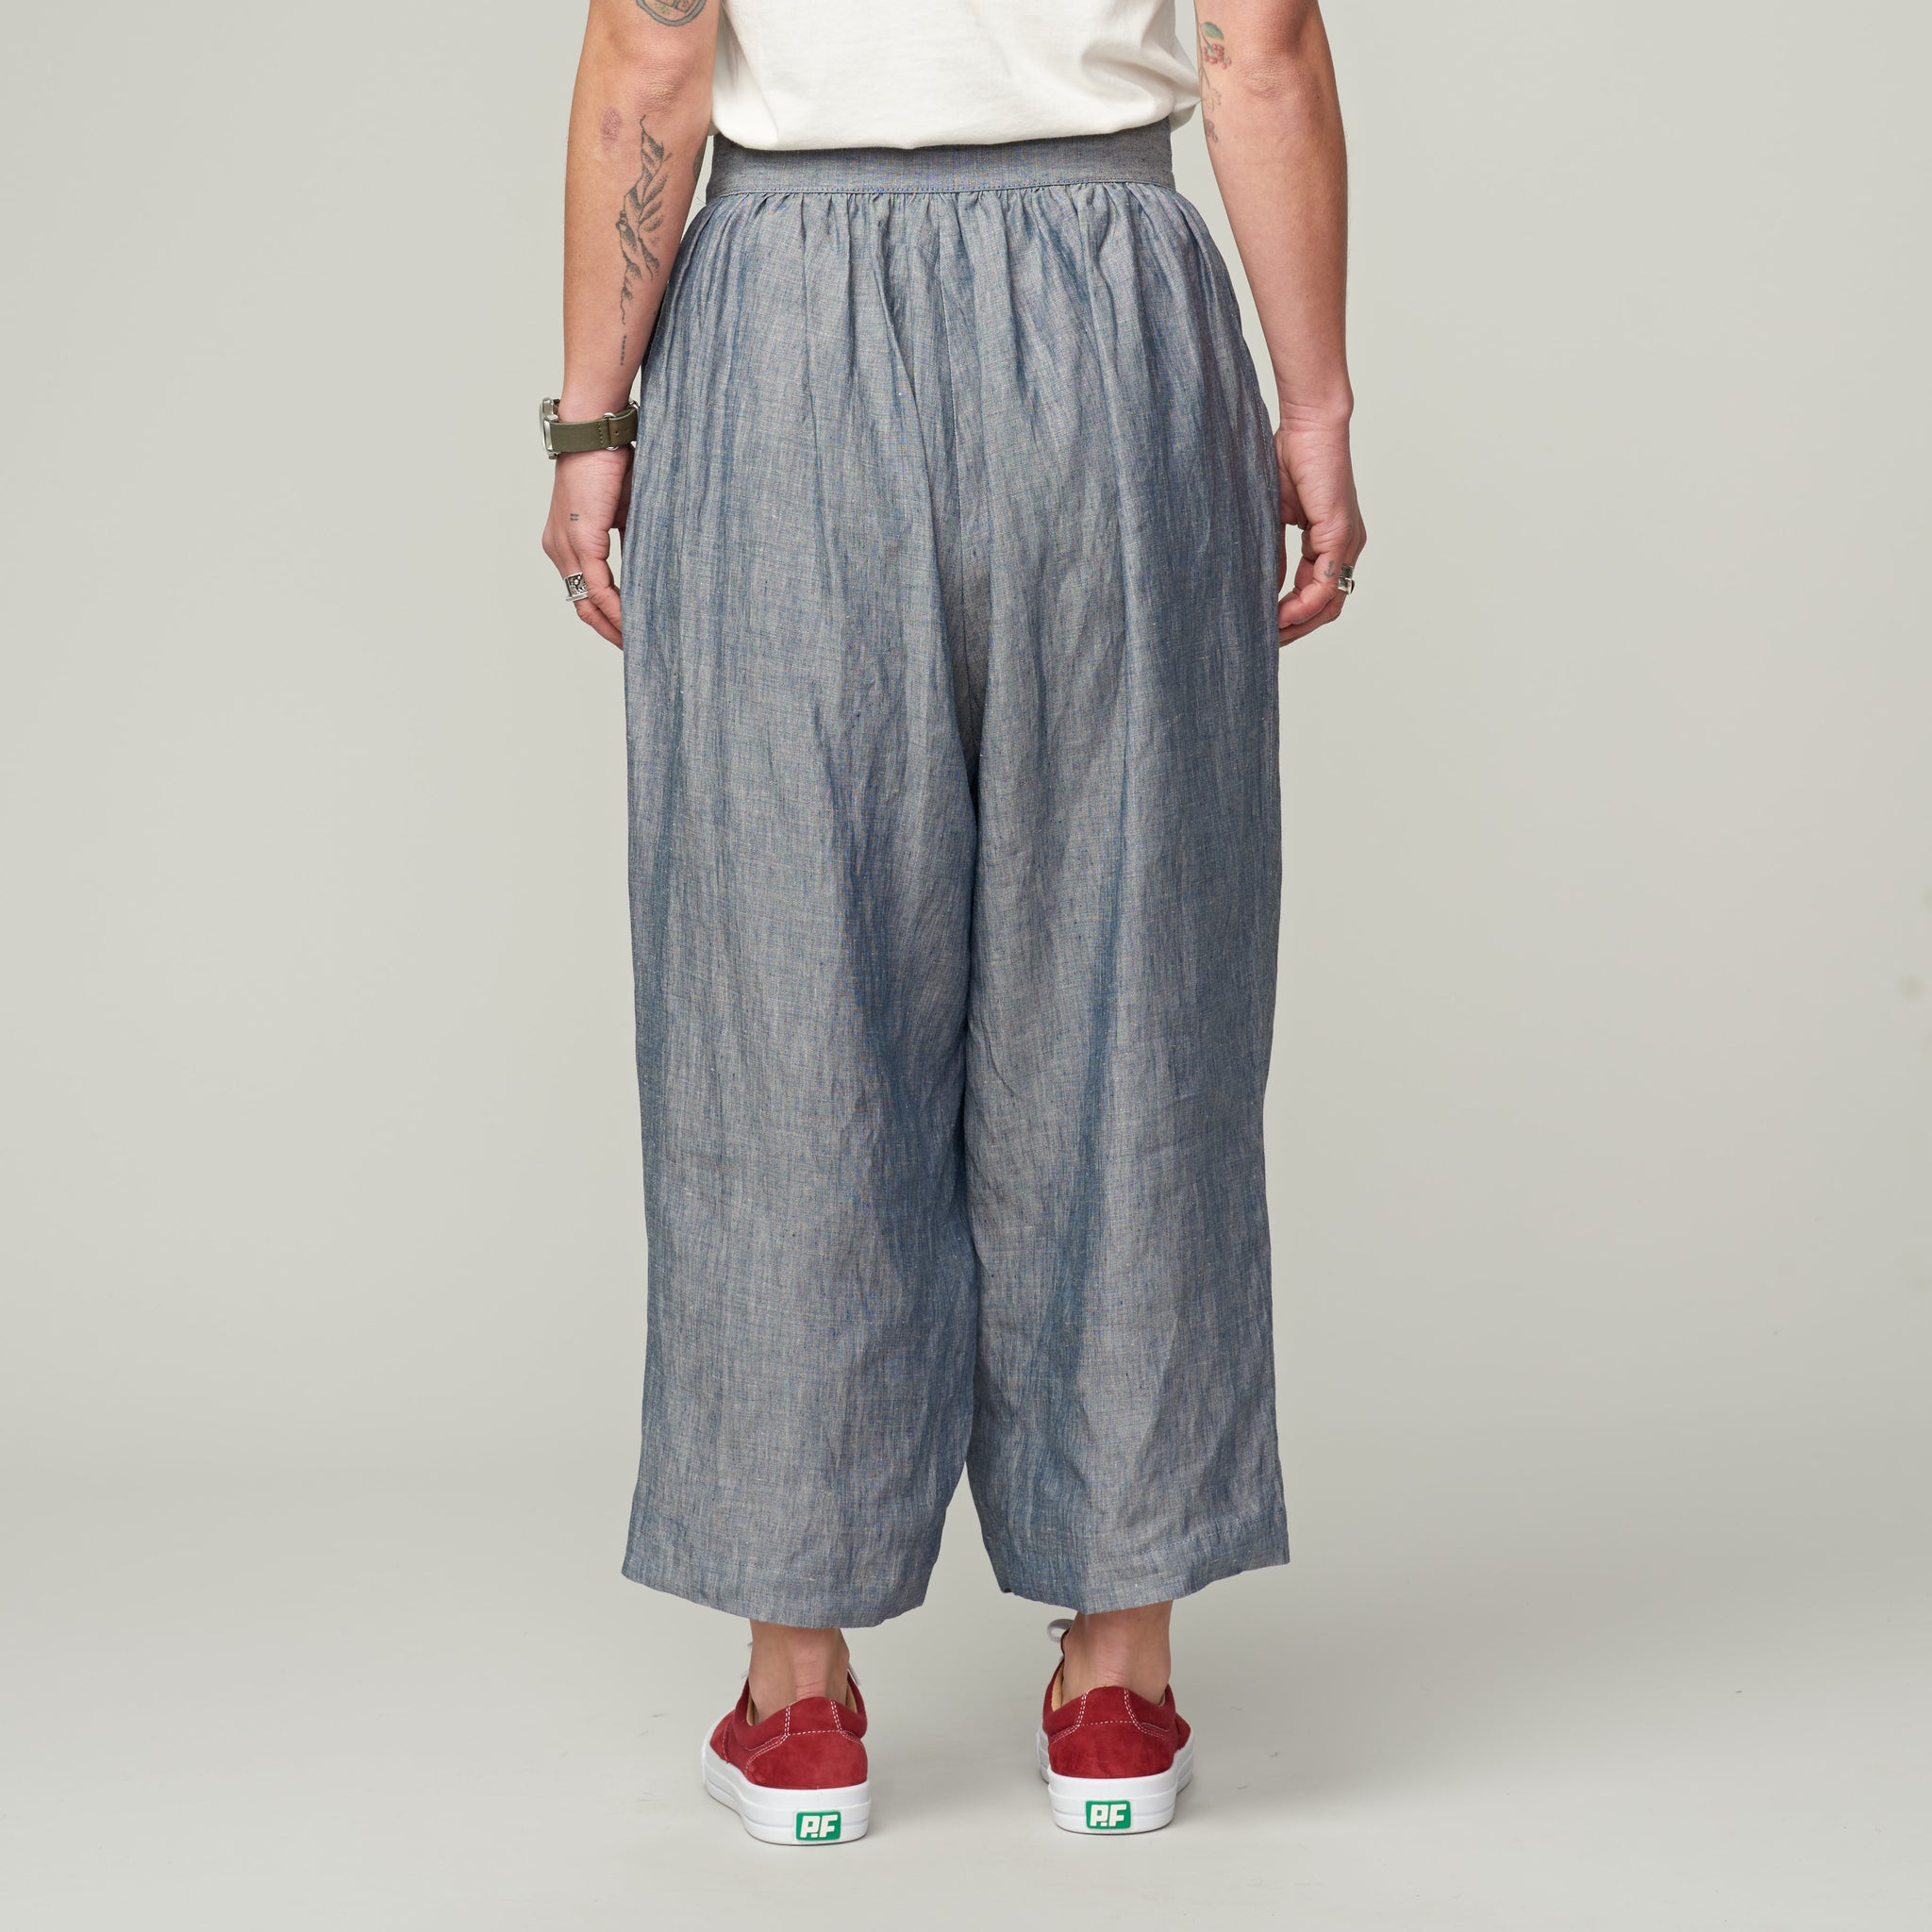 55c7159dd4db NIGEL CABOURN WOMAN - FARMER S PANT LINEN CHAMBRAY – Heffernan and Haire